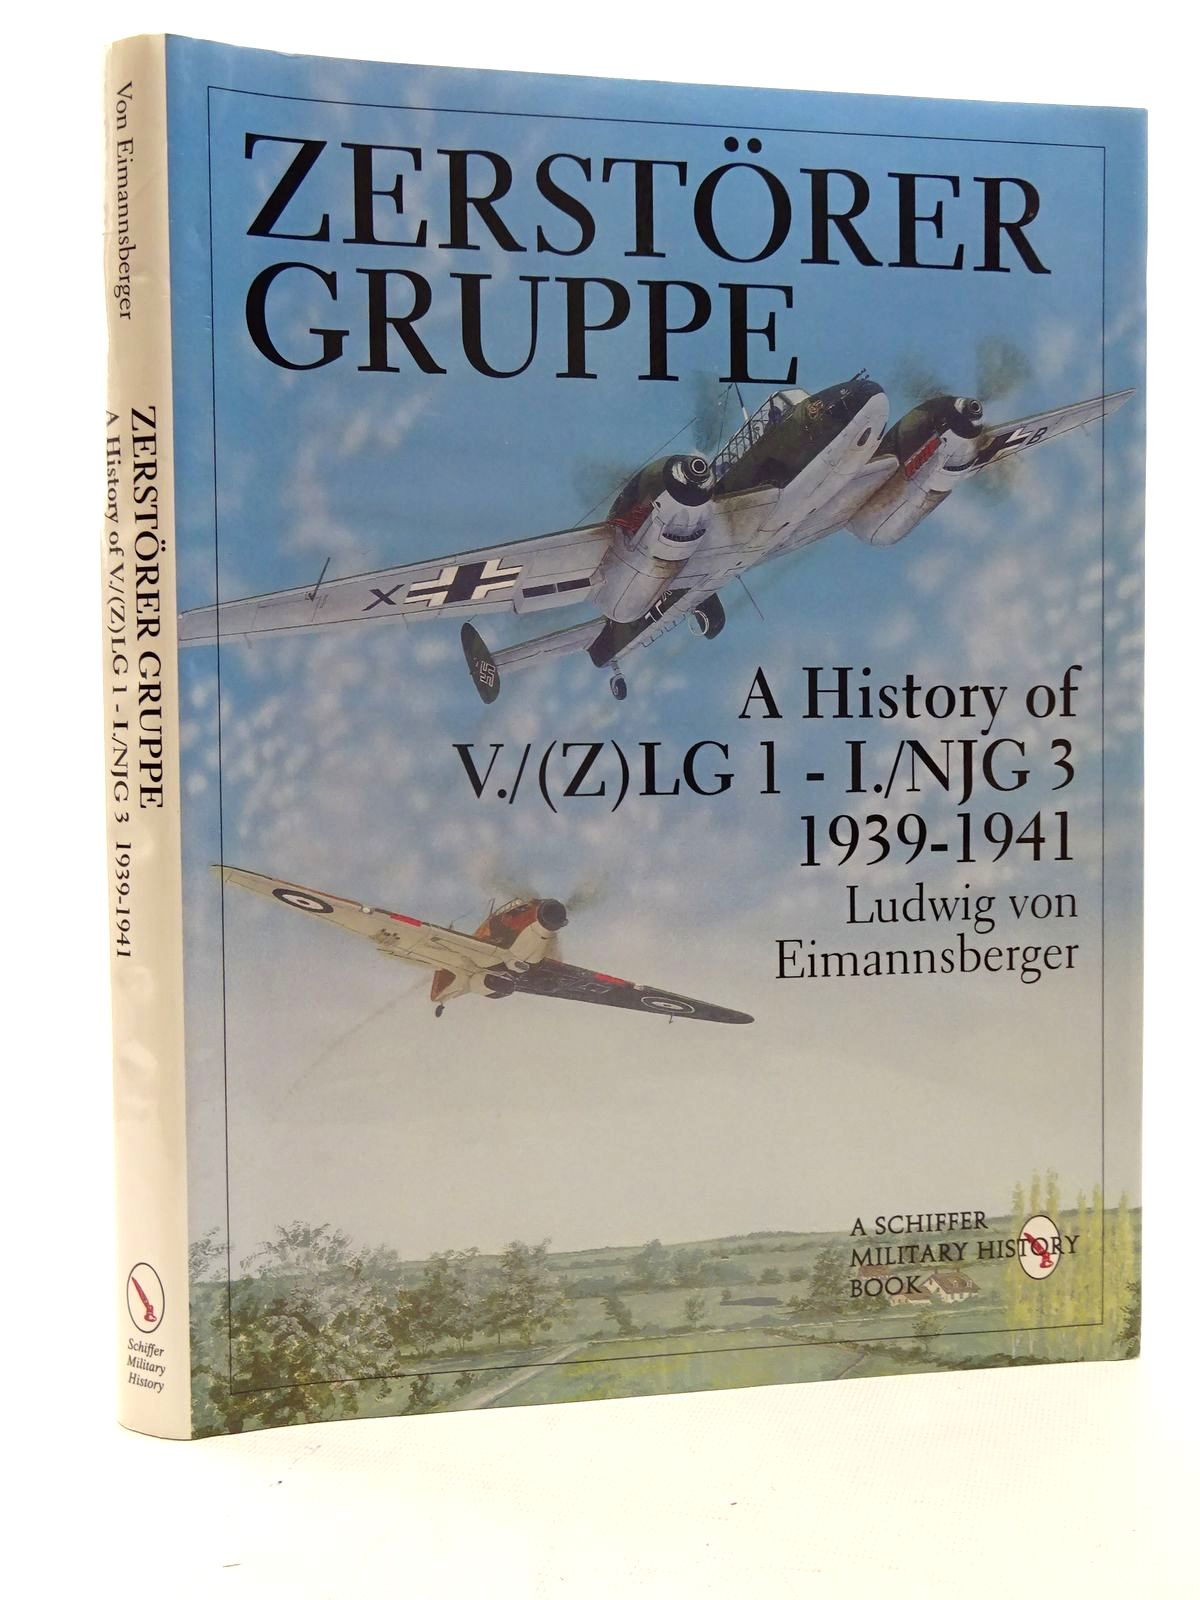 Photo of ZERSTORER GRUPPE A HISTORY OF V./(Z)LG 1 - I./NJG 3 1939-1941 written by Eimannsberger, Ludwig V. published by Schiffer Military History (STOCK CODE: 2125691)  for sale by Stella & Rose's Books